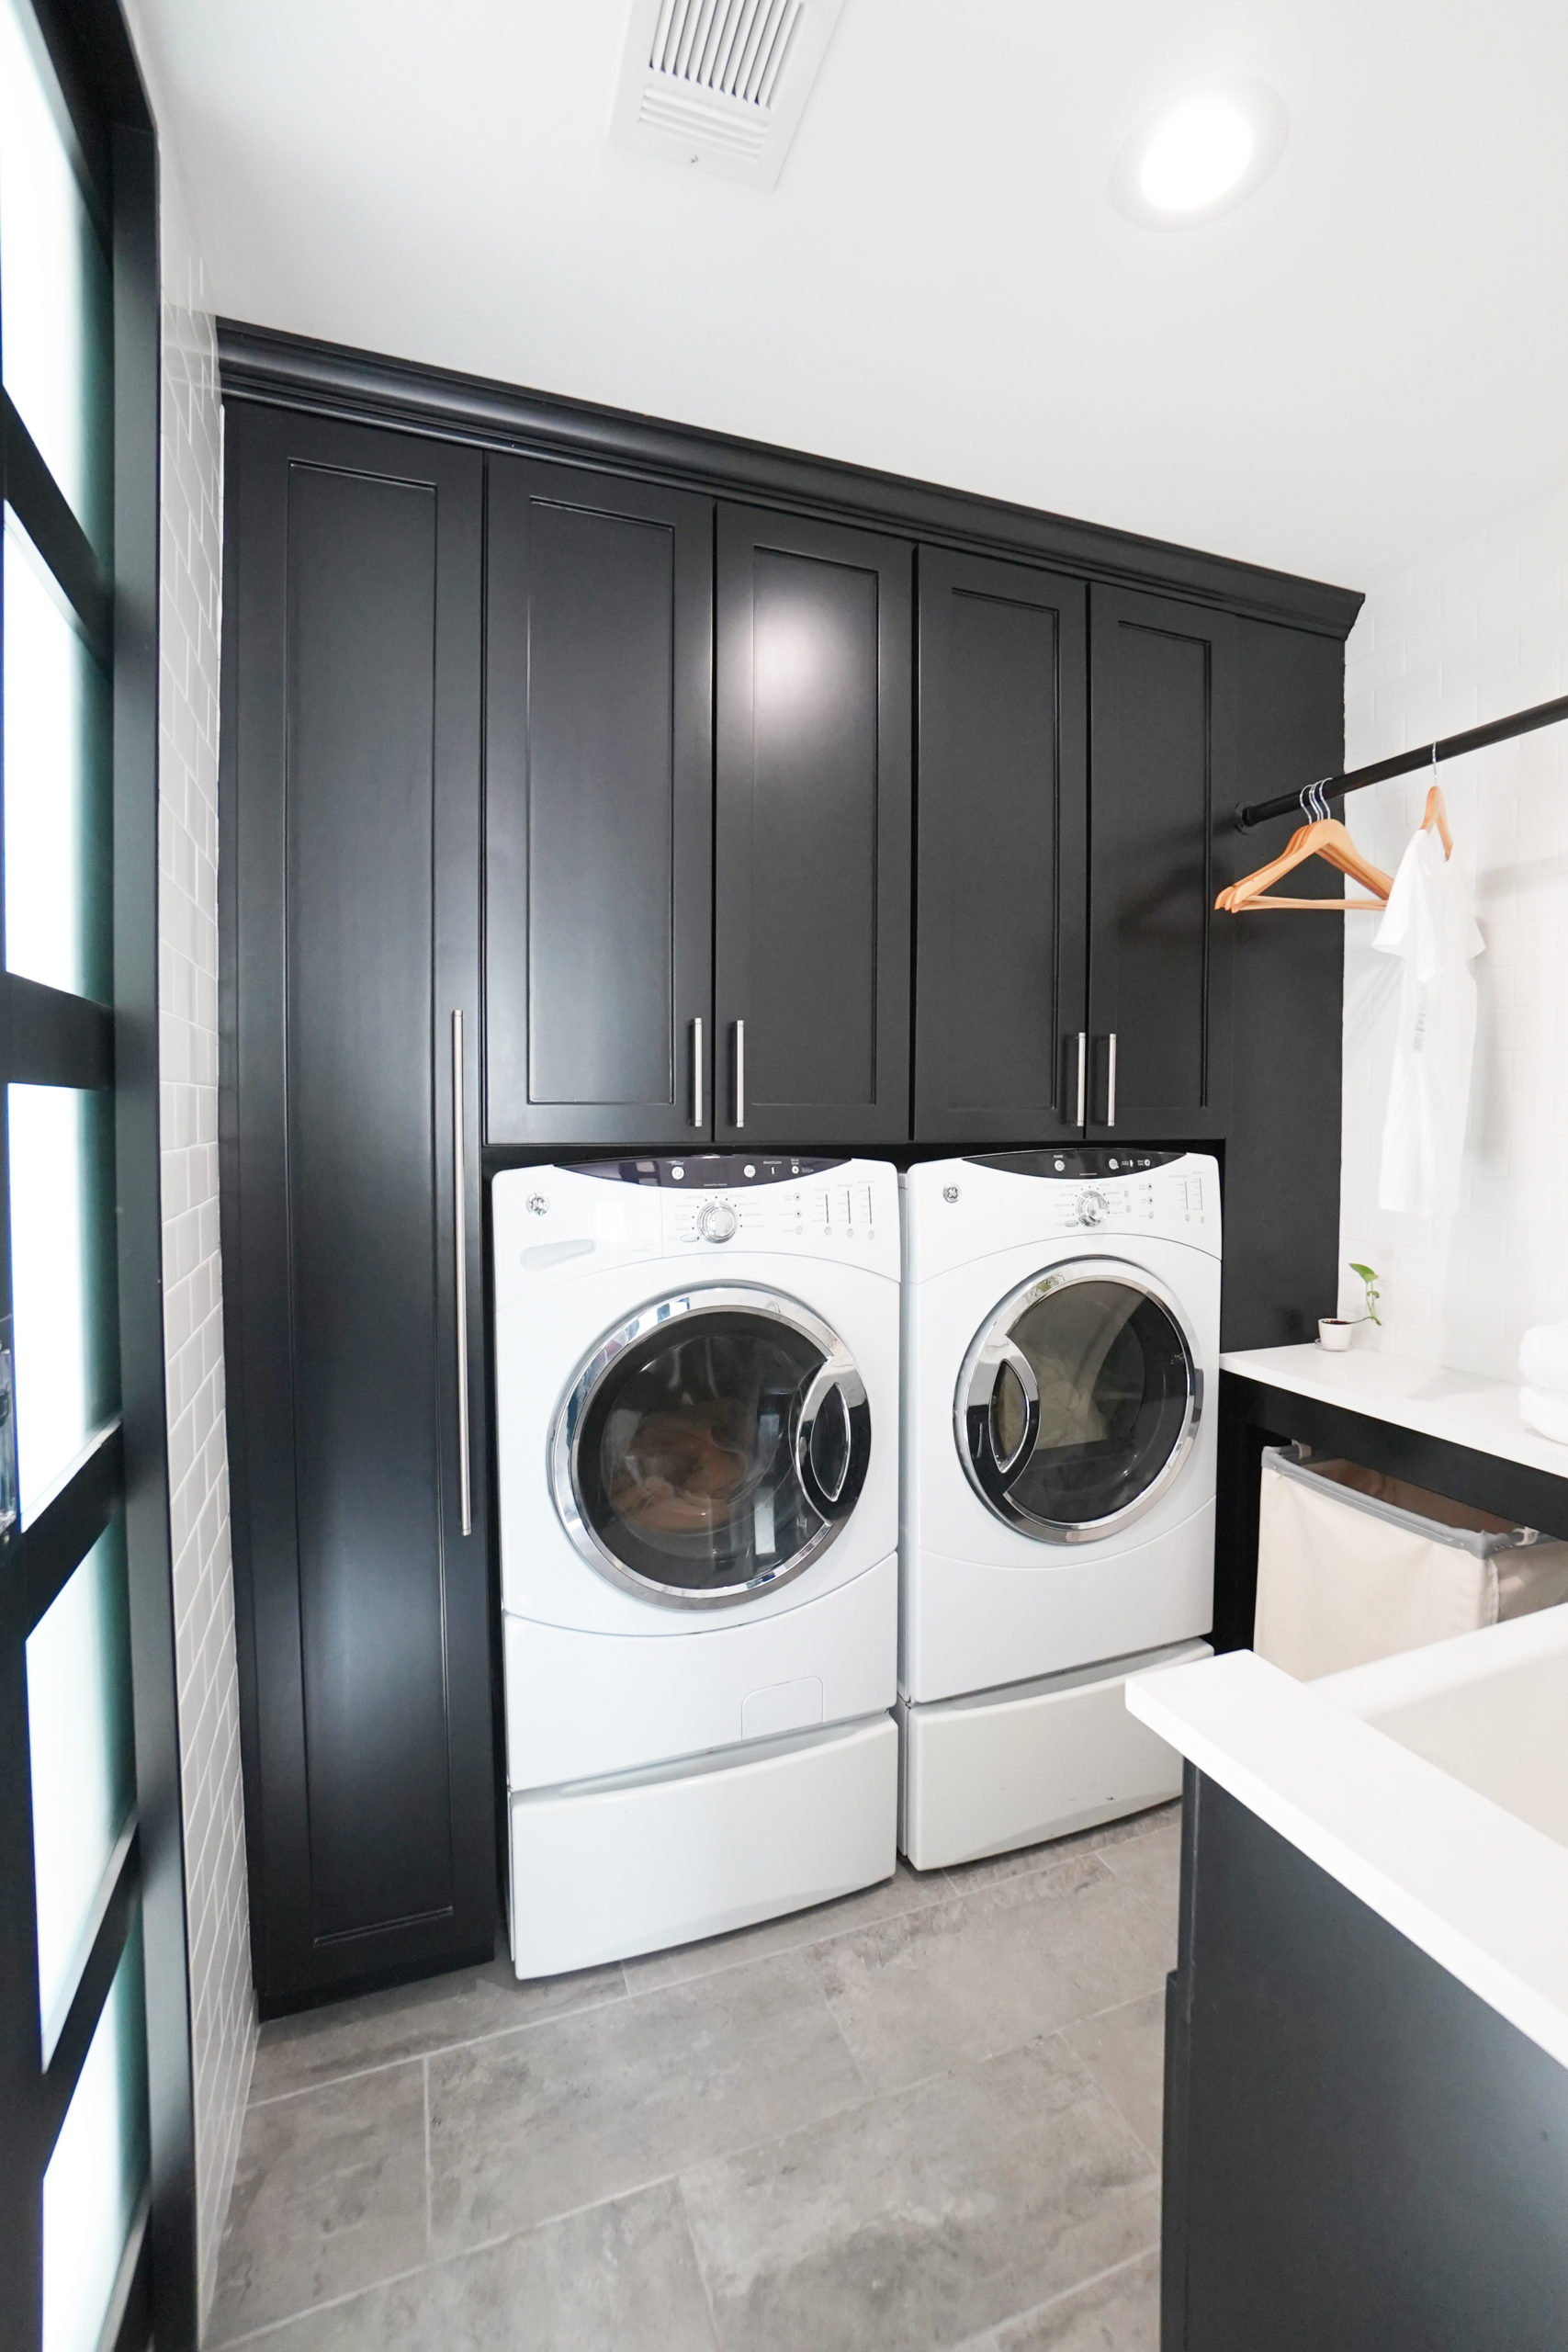 Laundry room design ideas home remodeling atlanta